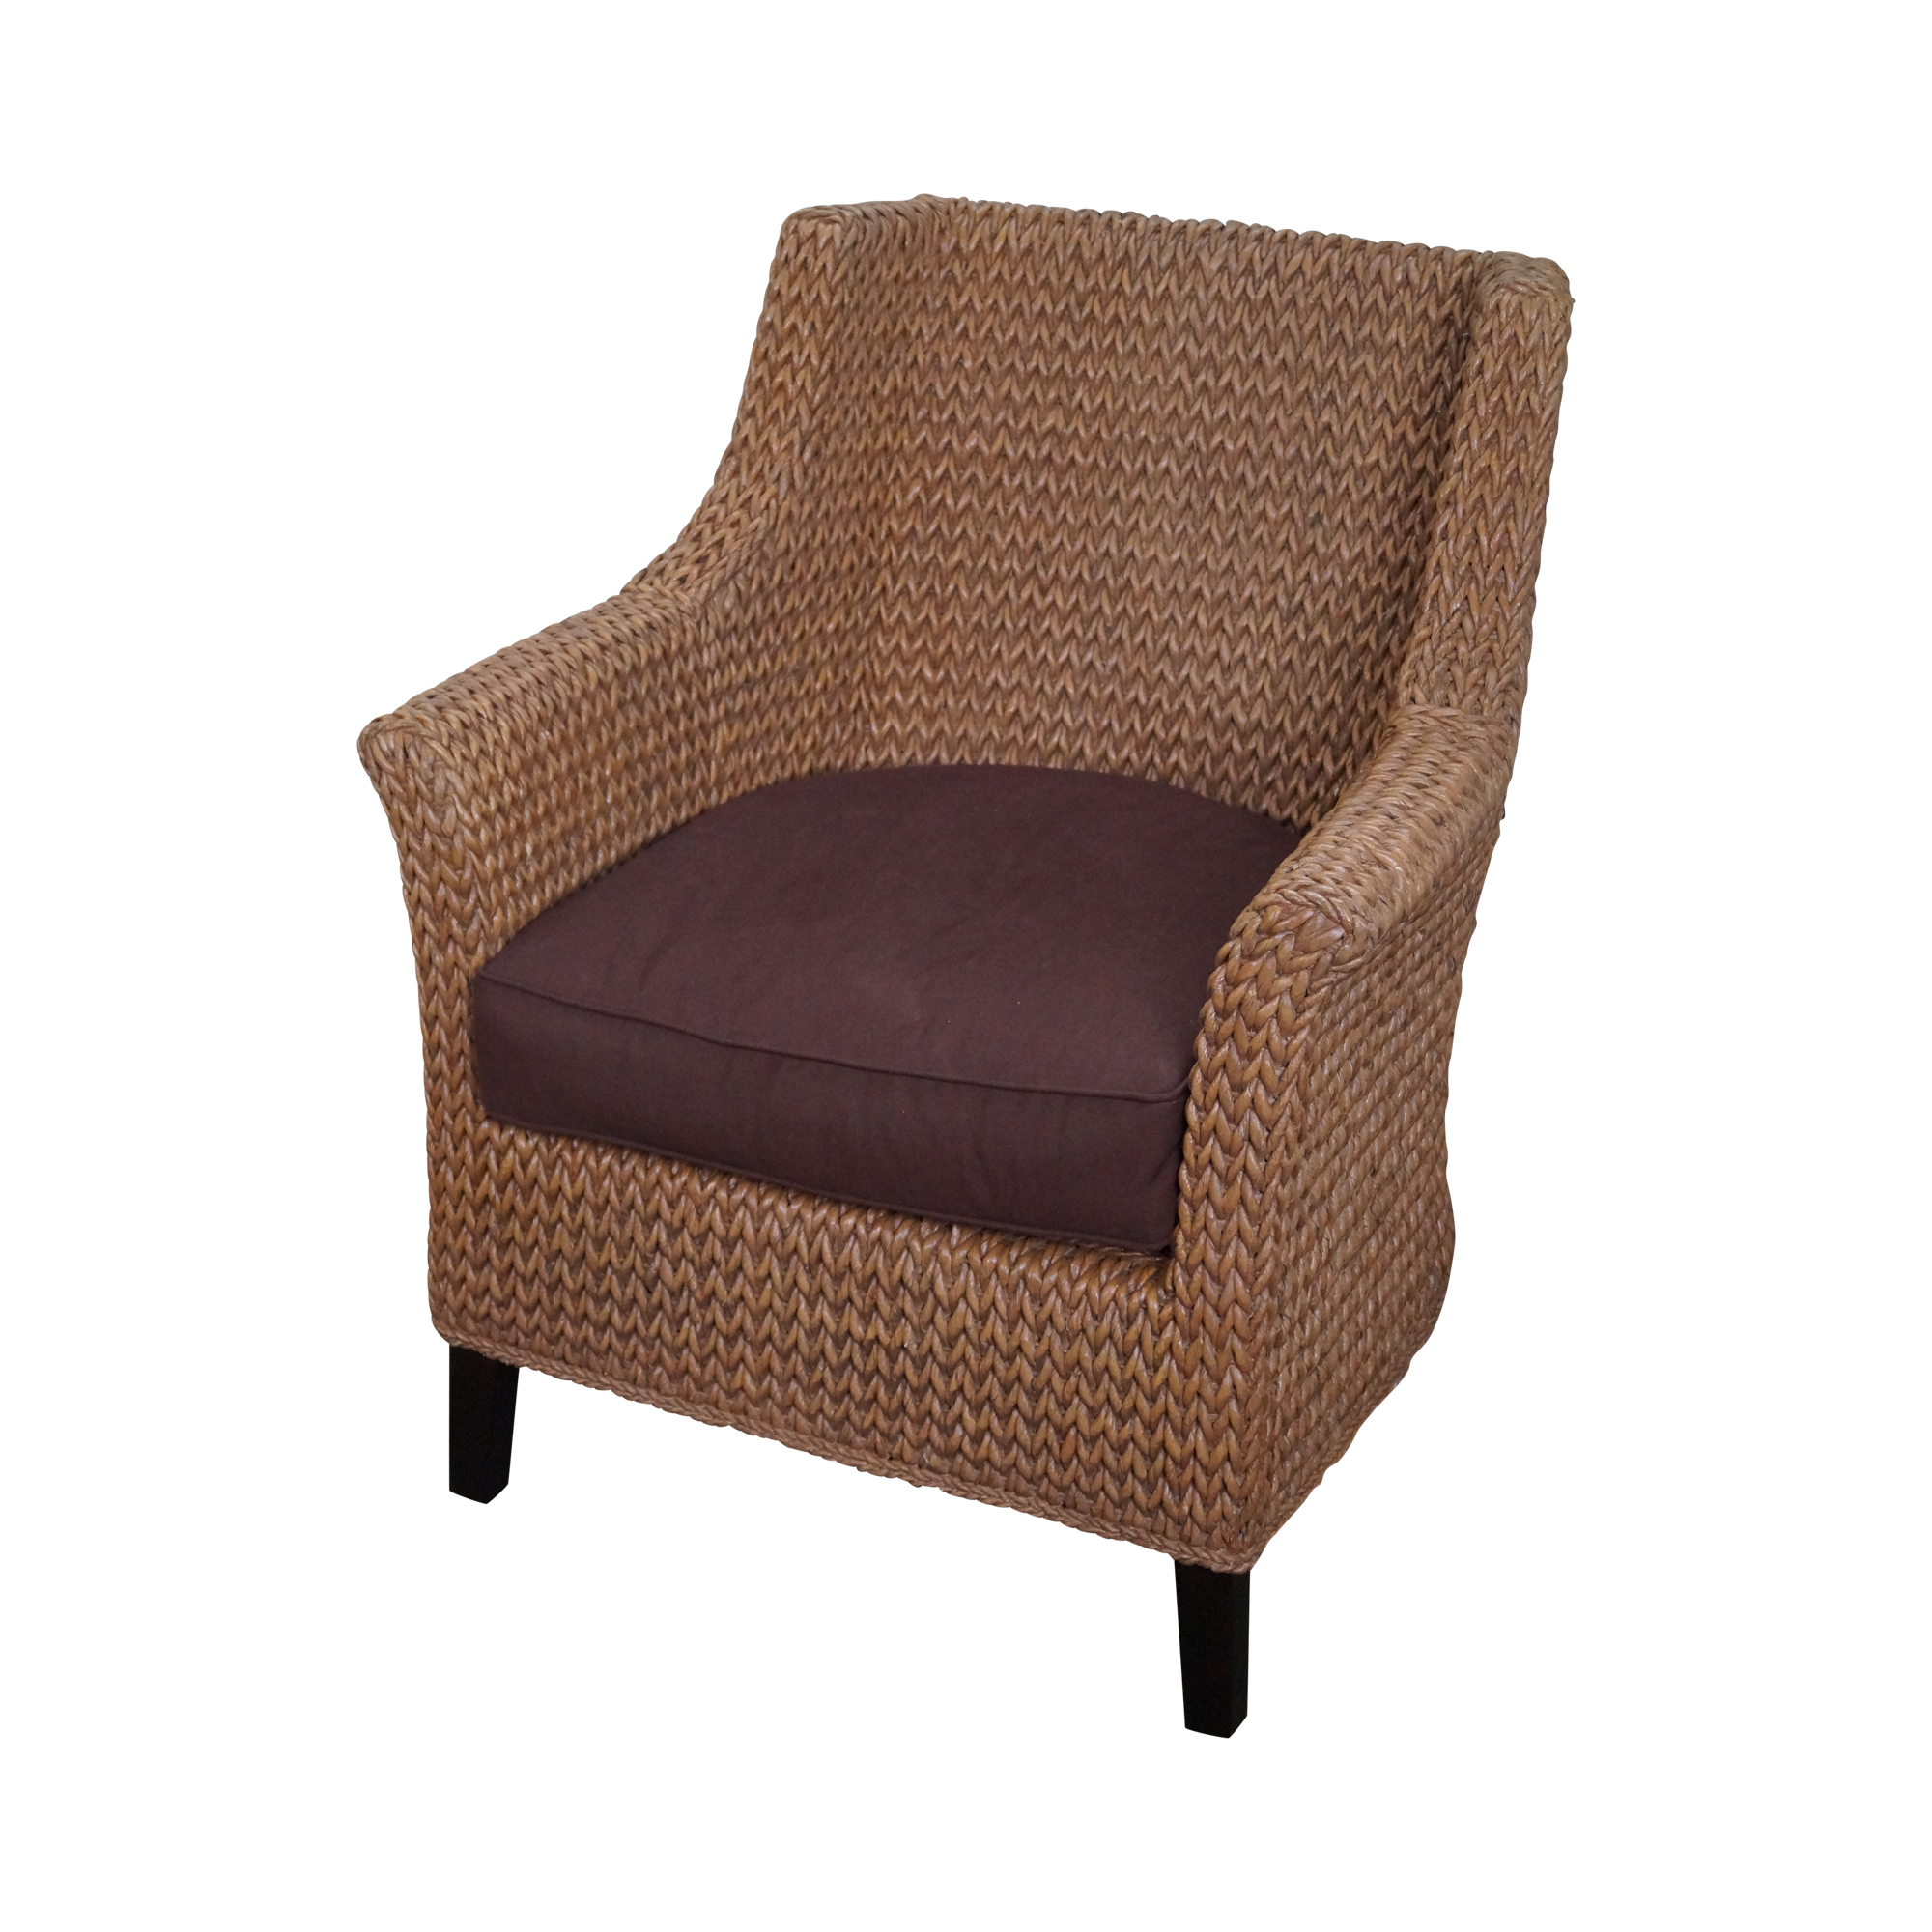 Pottery Barn Seagrass Woven Rope Wingback Chair